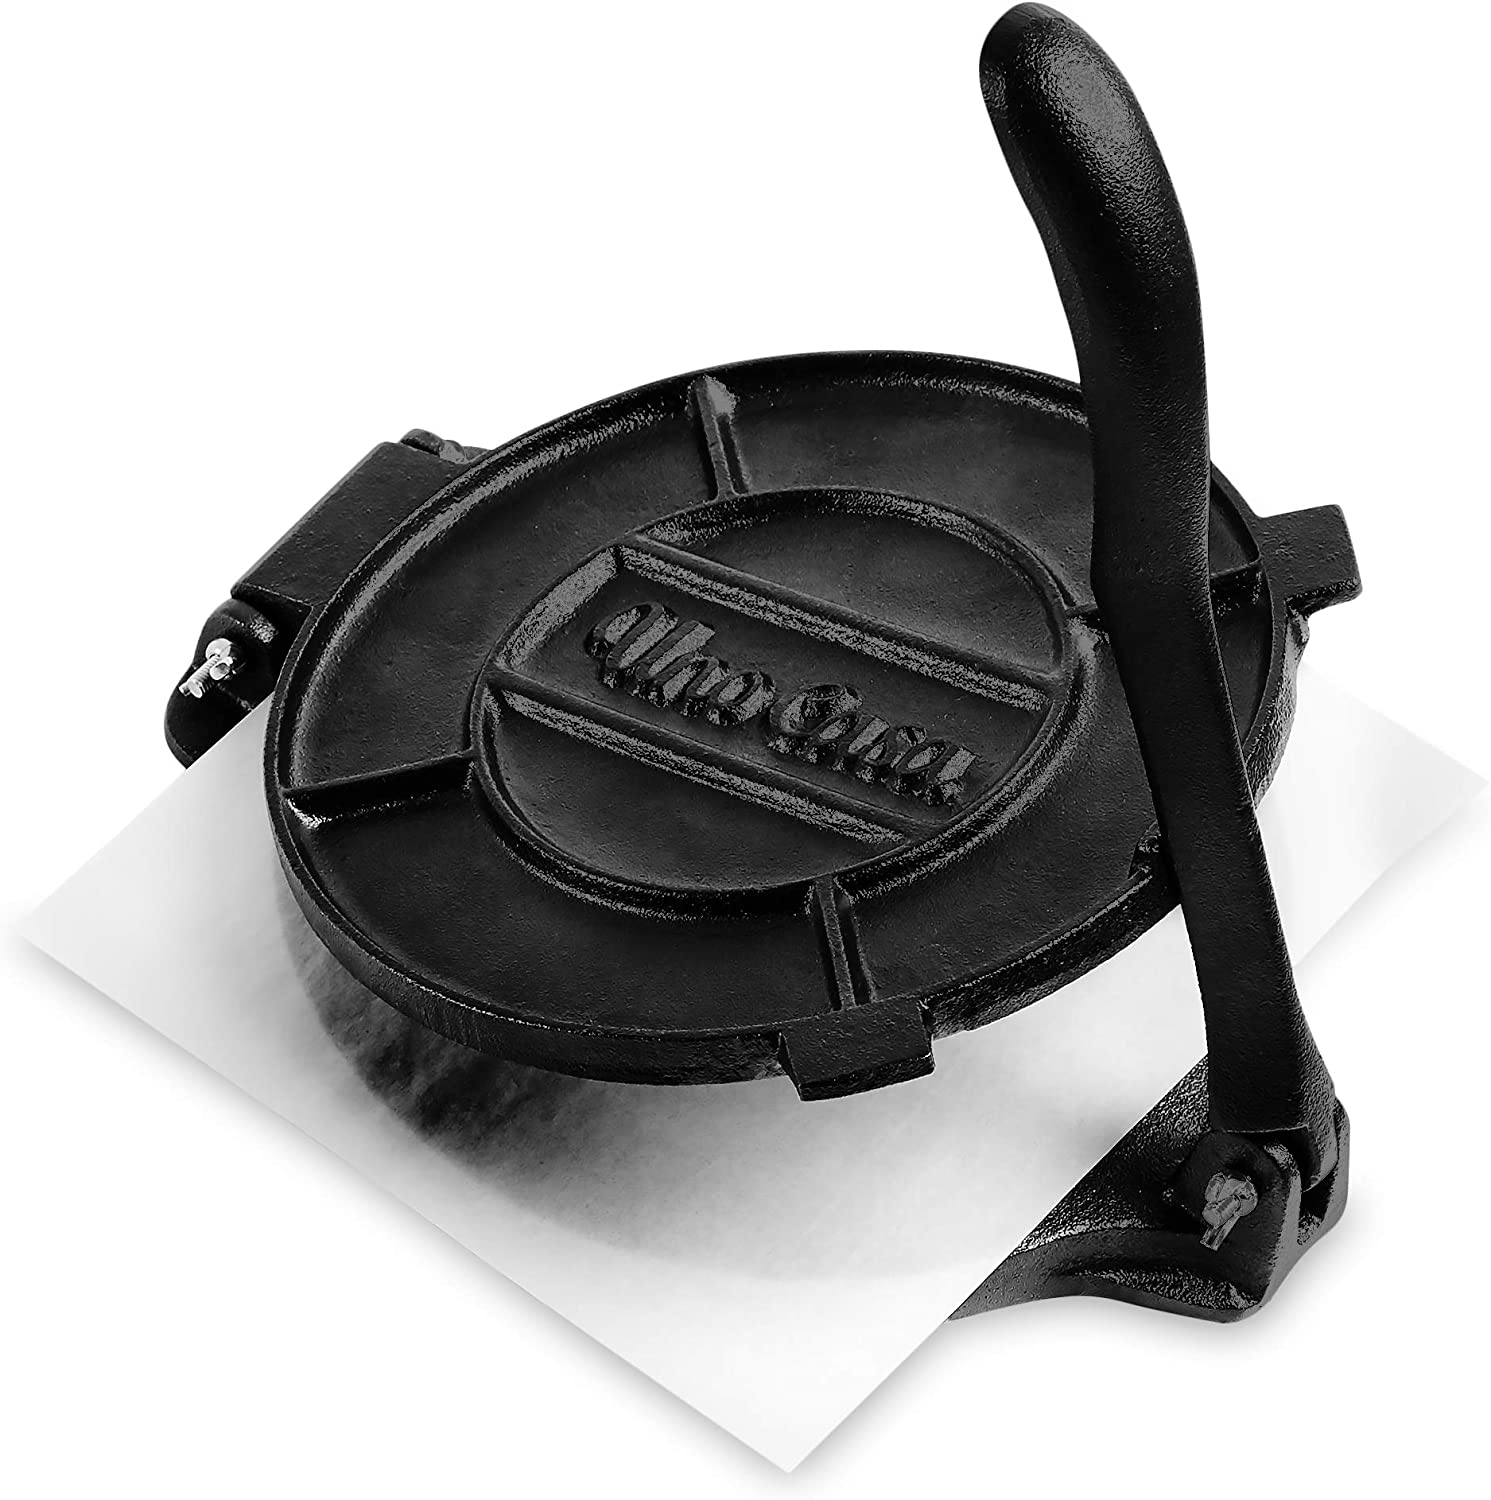 Review of Uno Casa Cast Iron Tortilla Press - 8 Inch, Pre-Seasoned Tortilla Maker